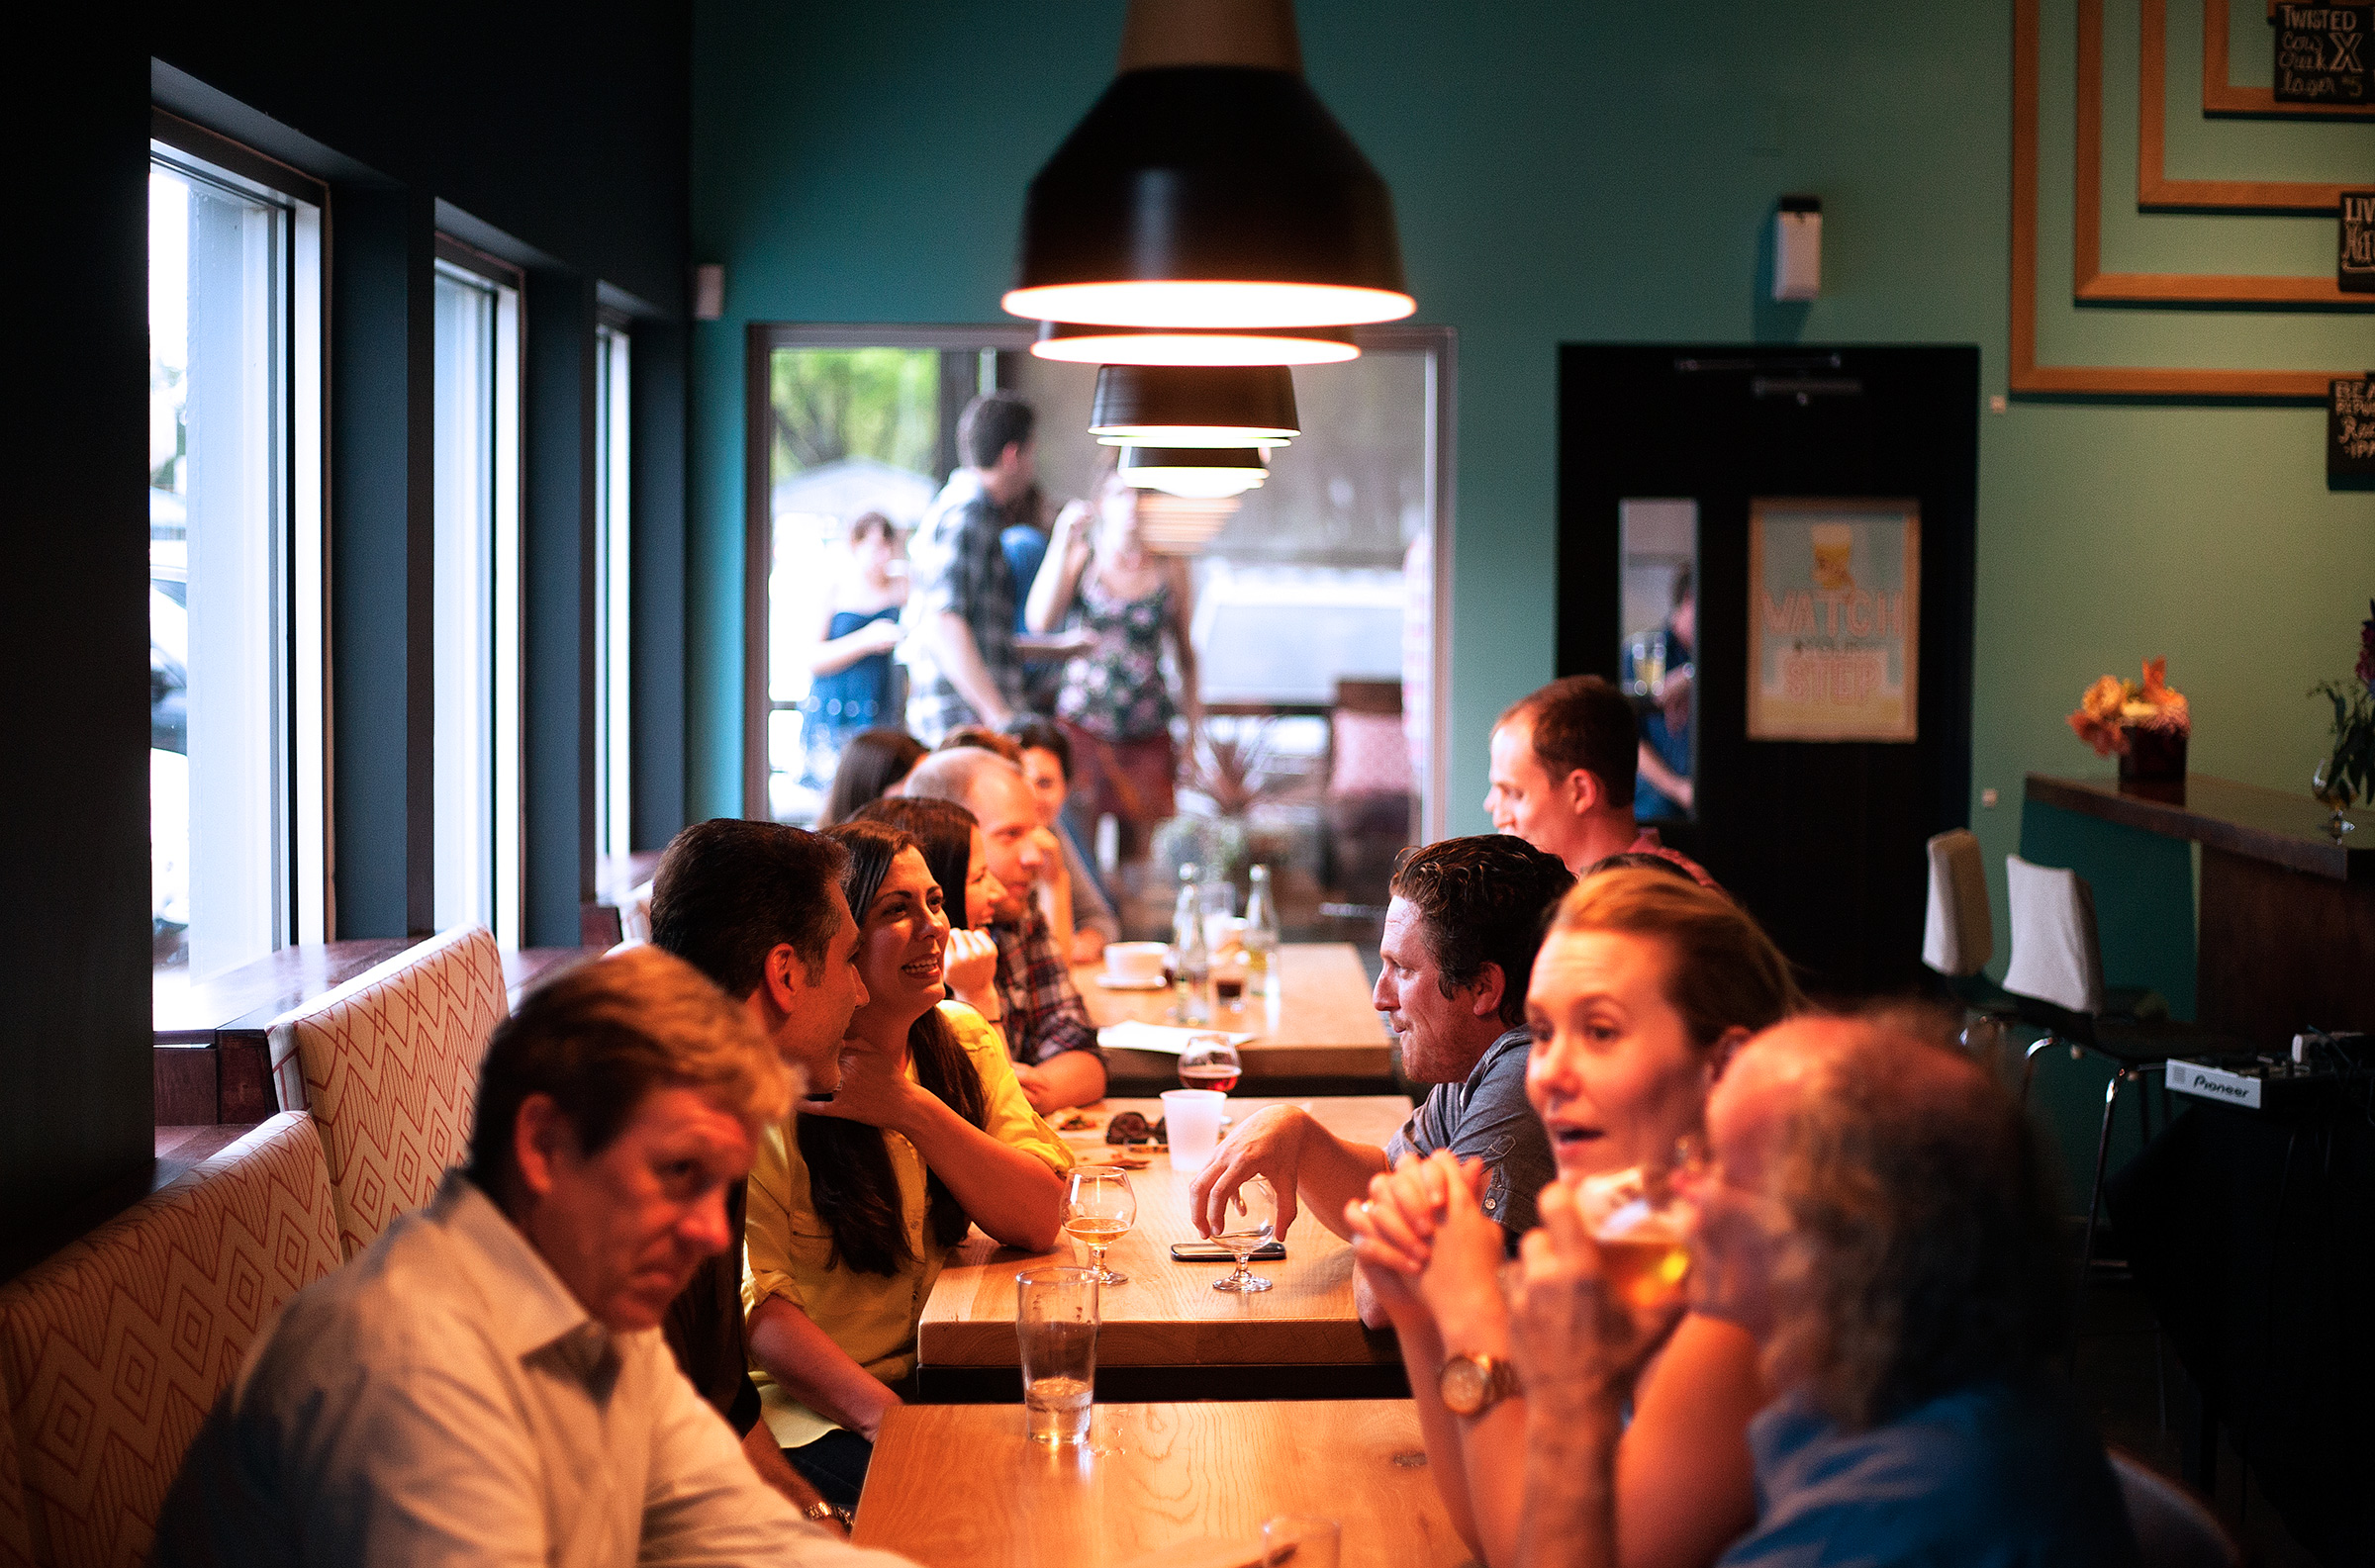 Photo of several tables of people chatting, drinking at a restaurant